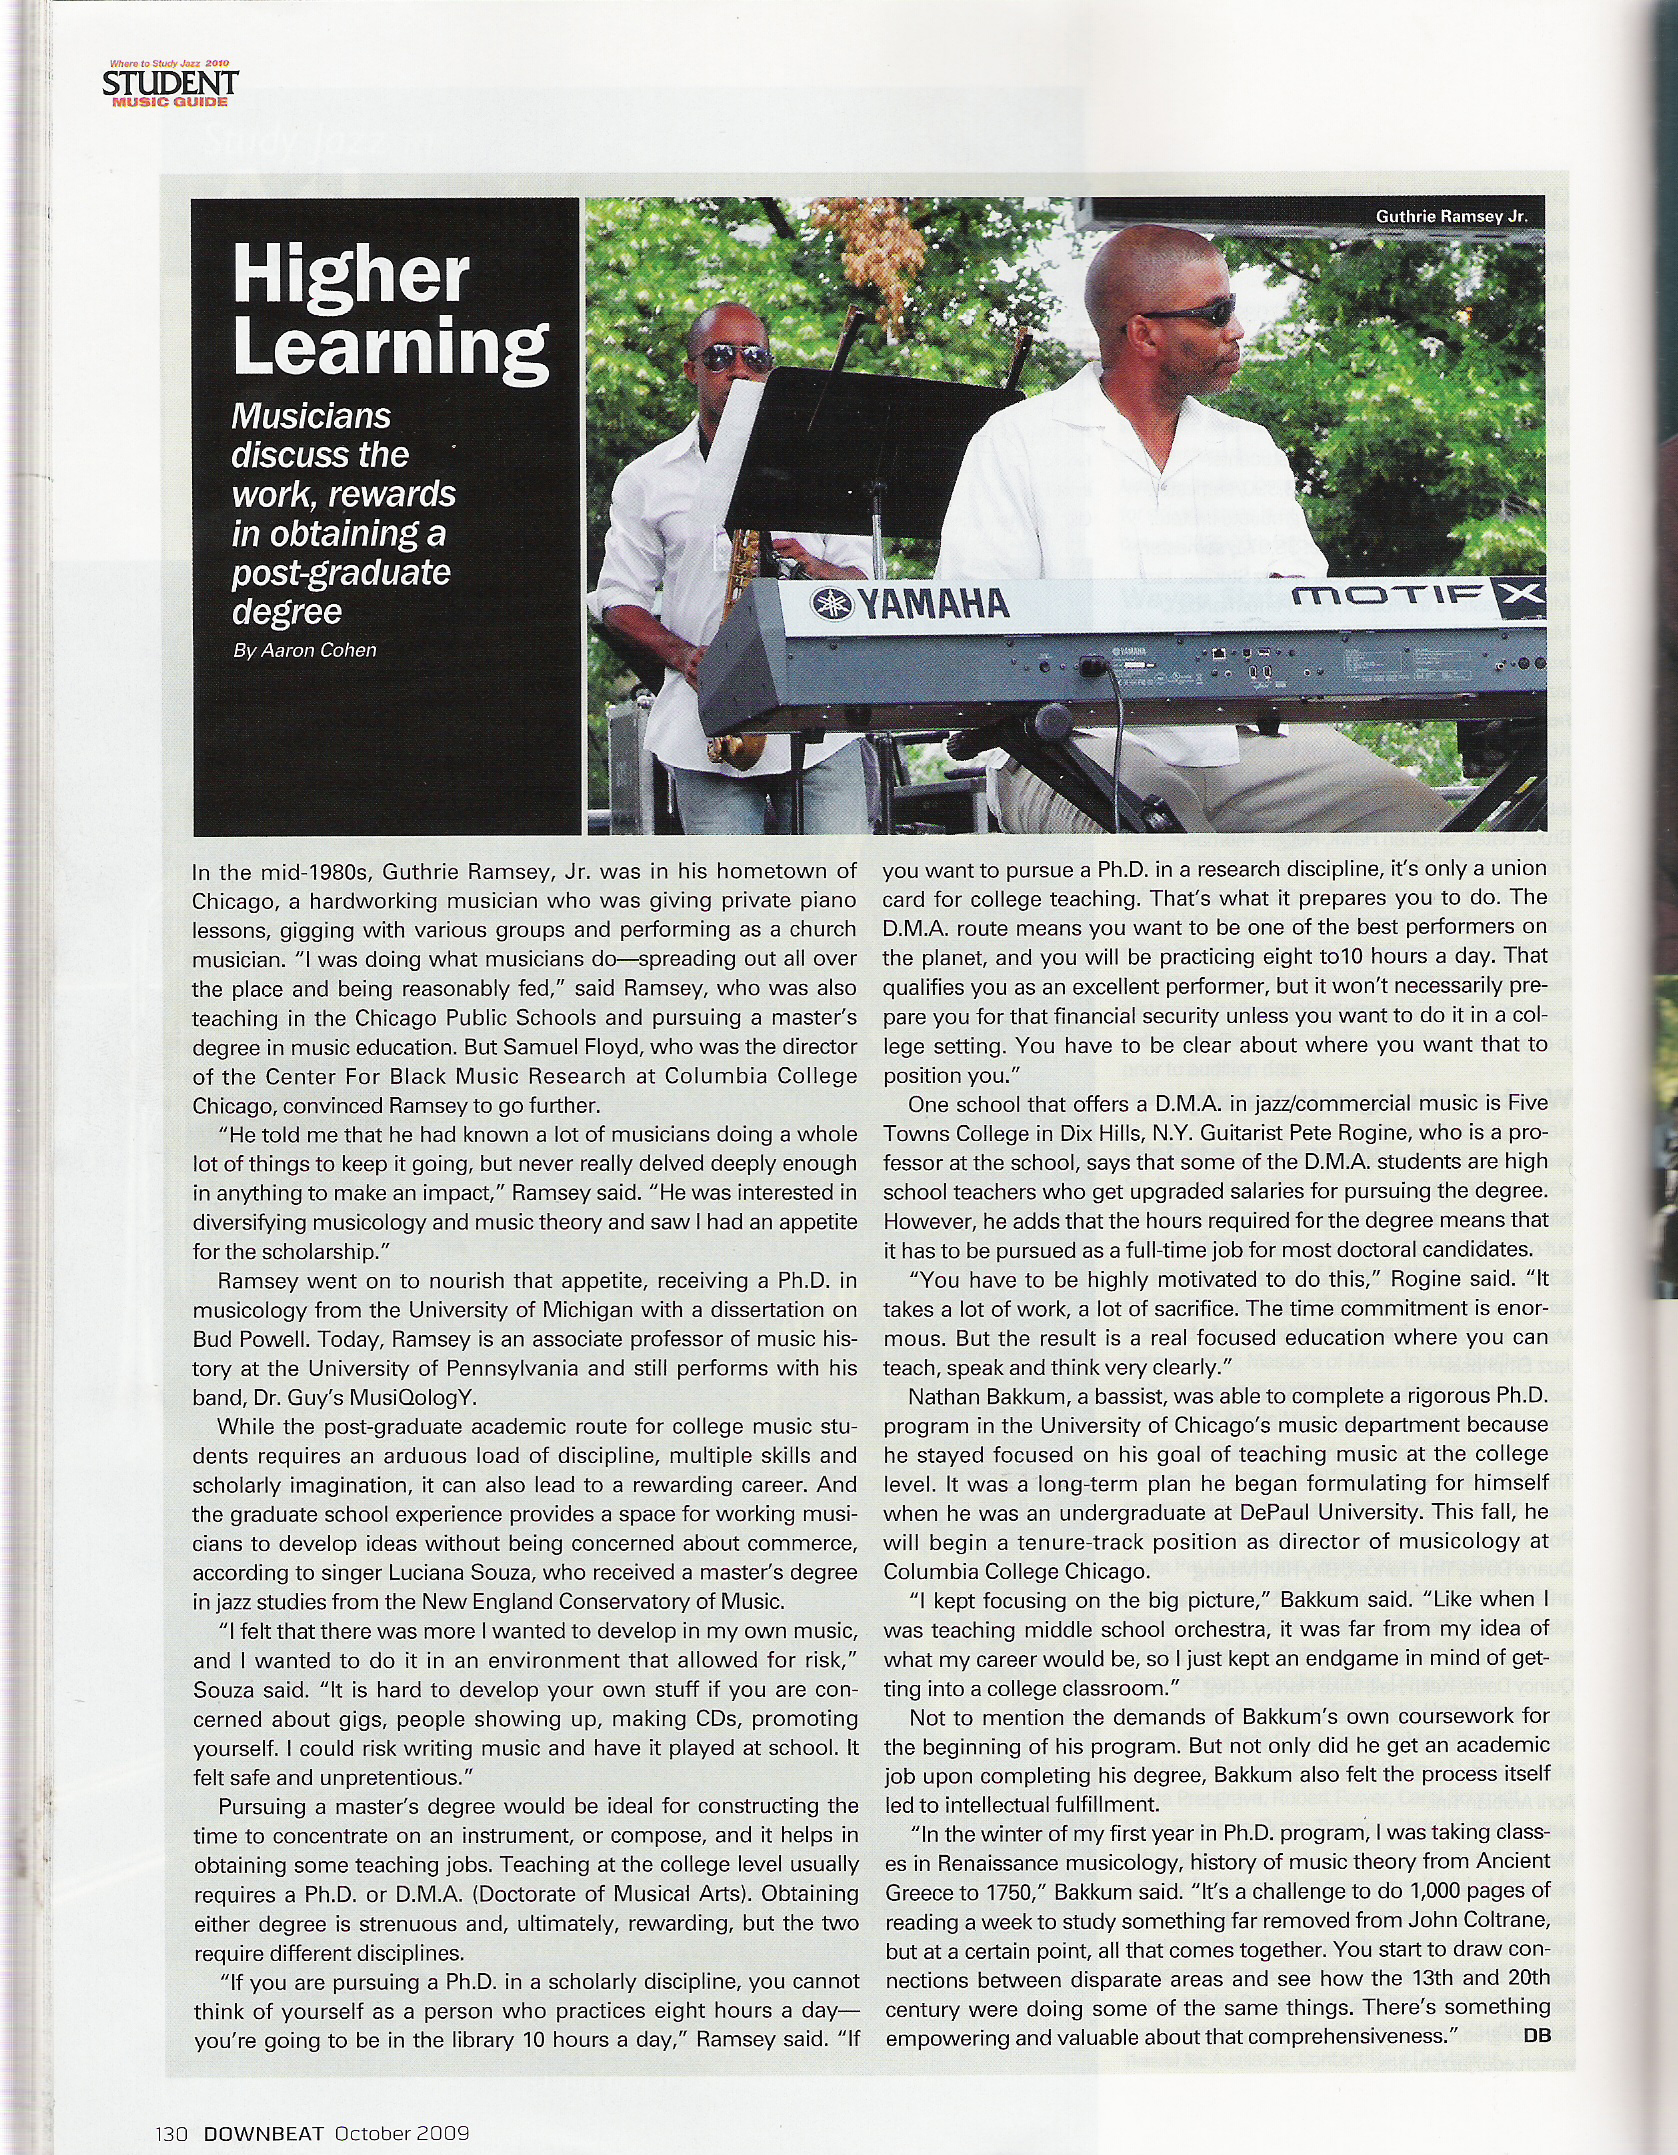 Downbeat Magazine October 09 - Higher Education Article